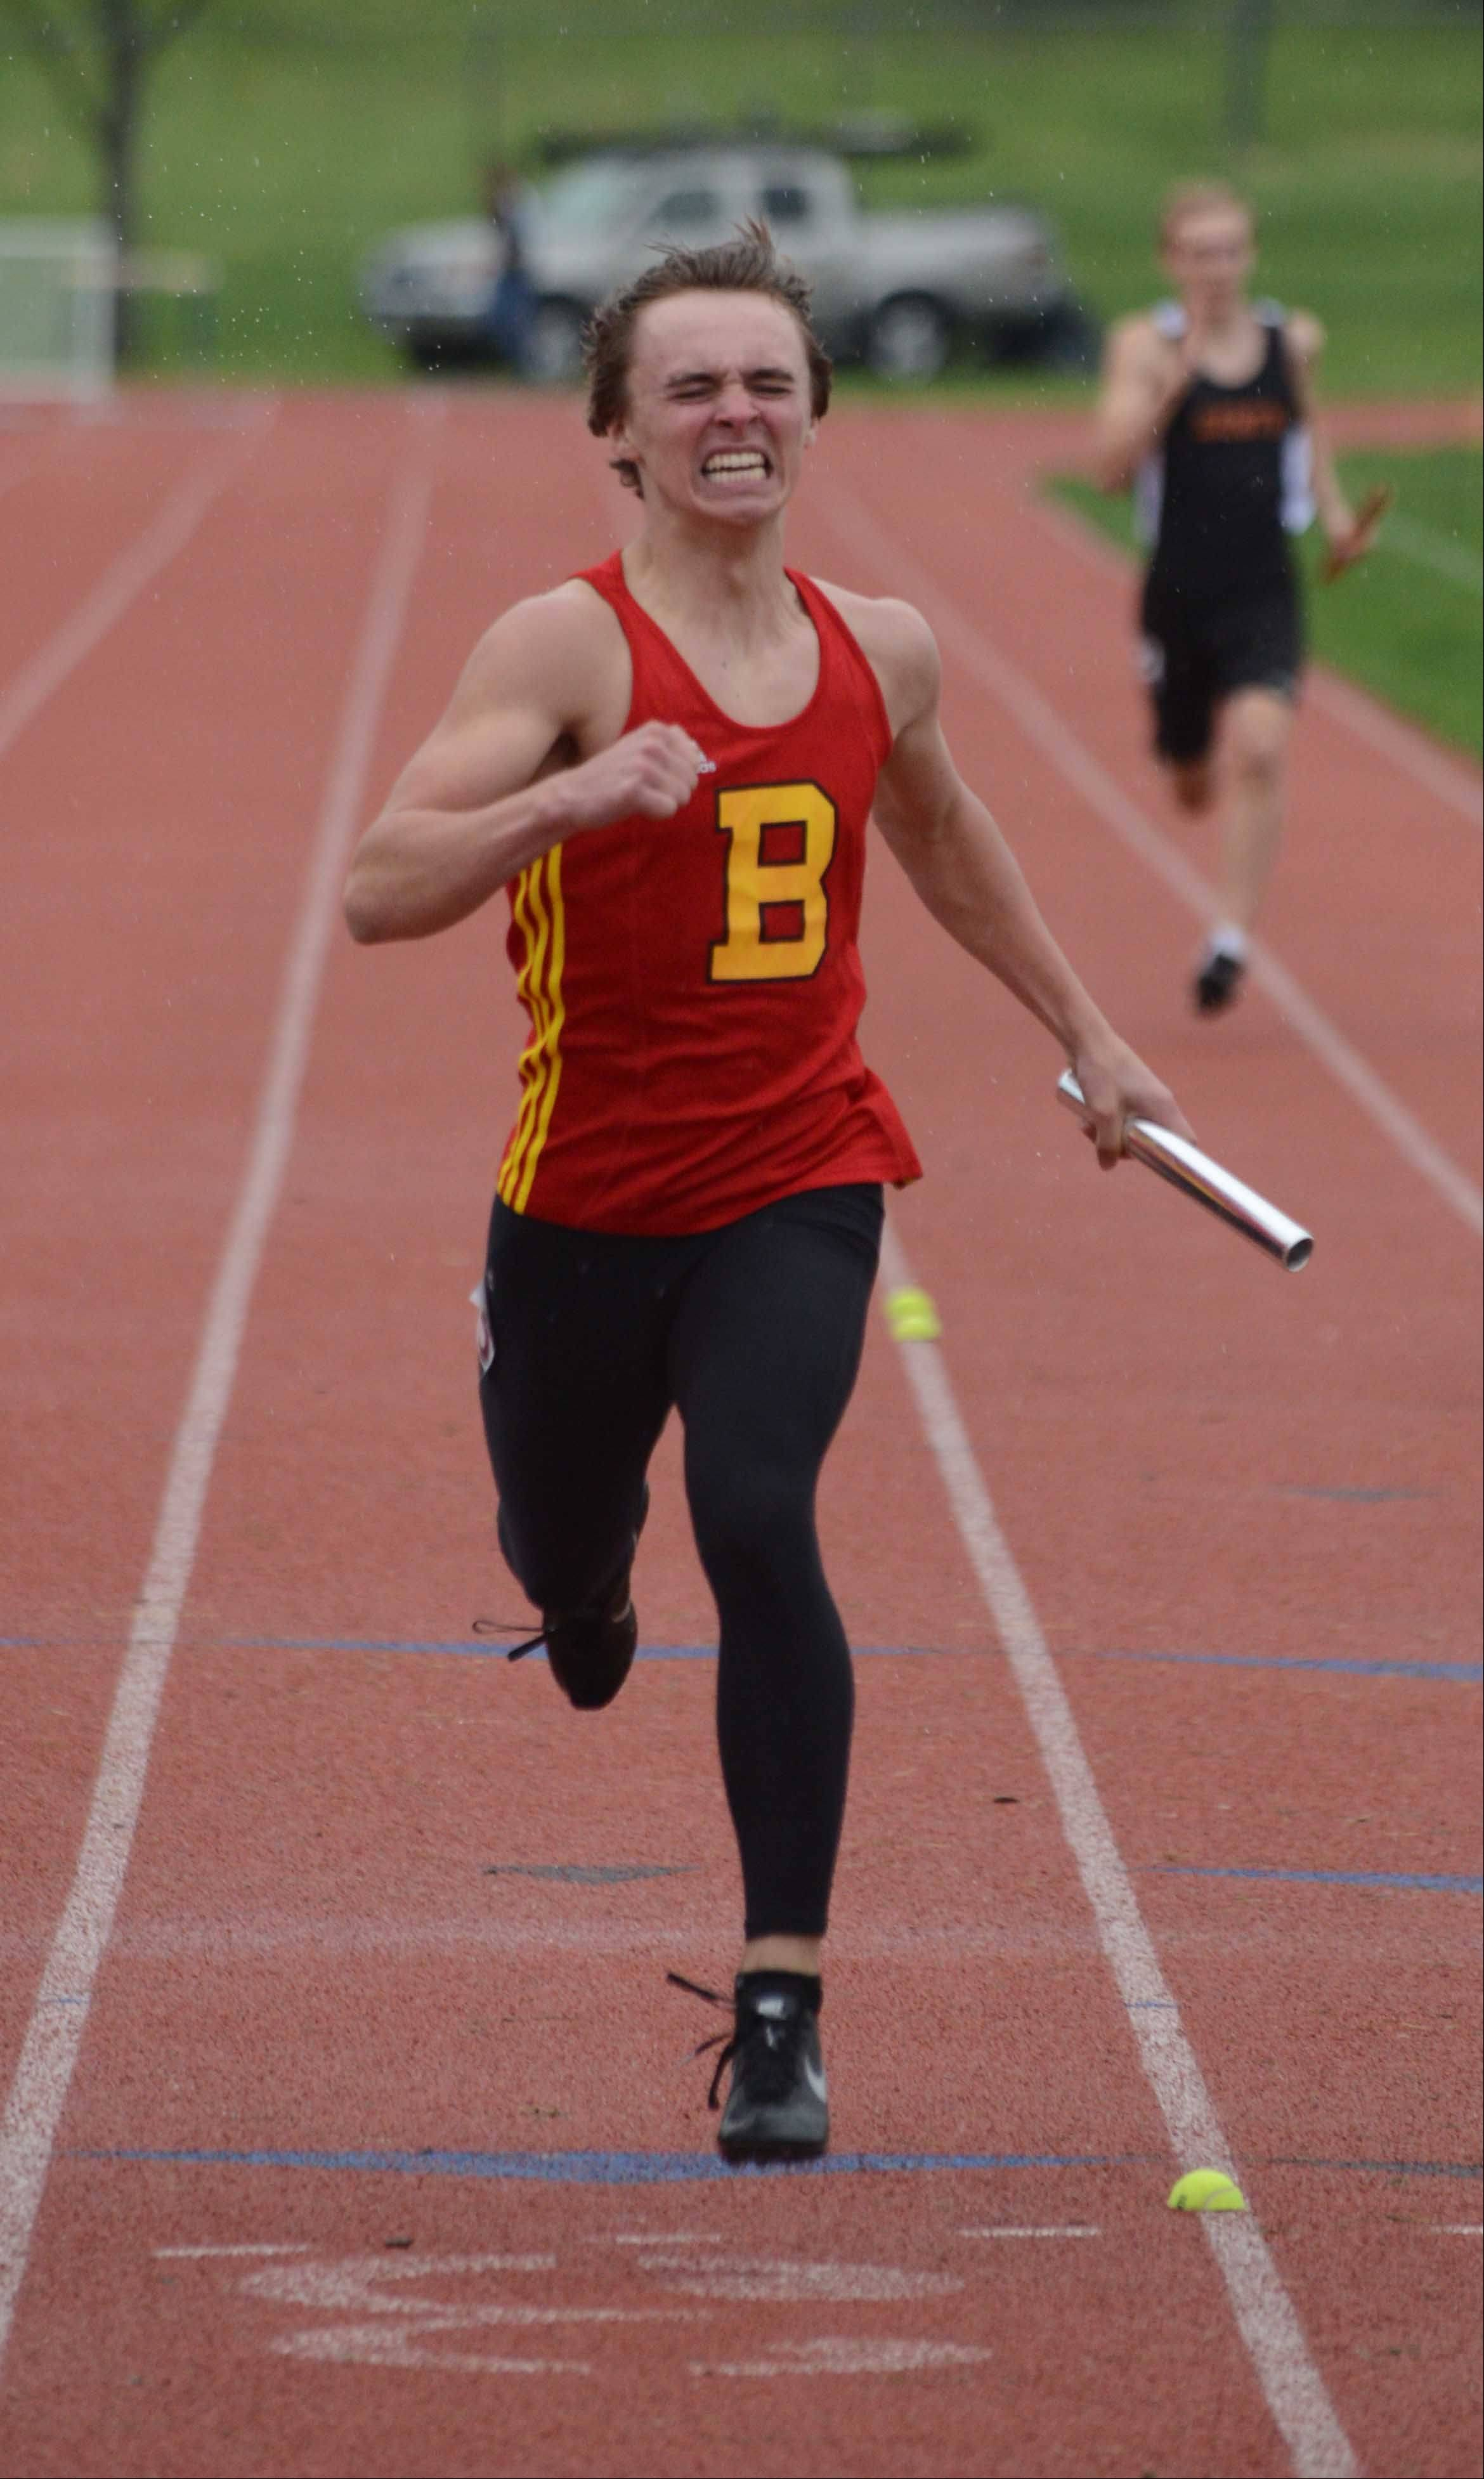 Triston Dever of Batavia runs the 4x200 meter relay during the Upstate Eight Conference boys track finals Thursday. The event was held at Lake Park East Campus.